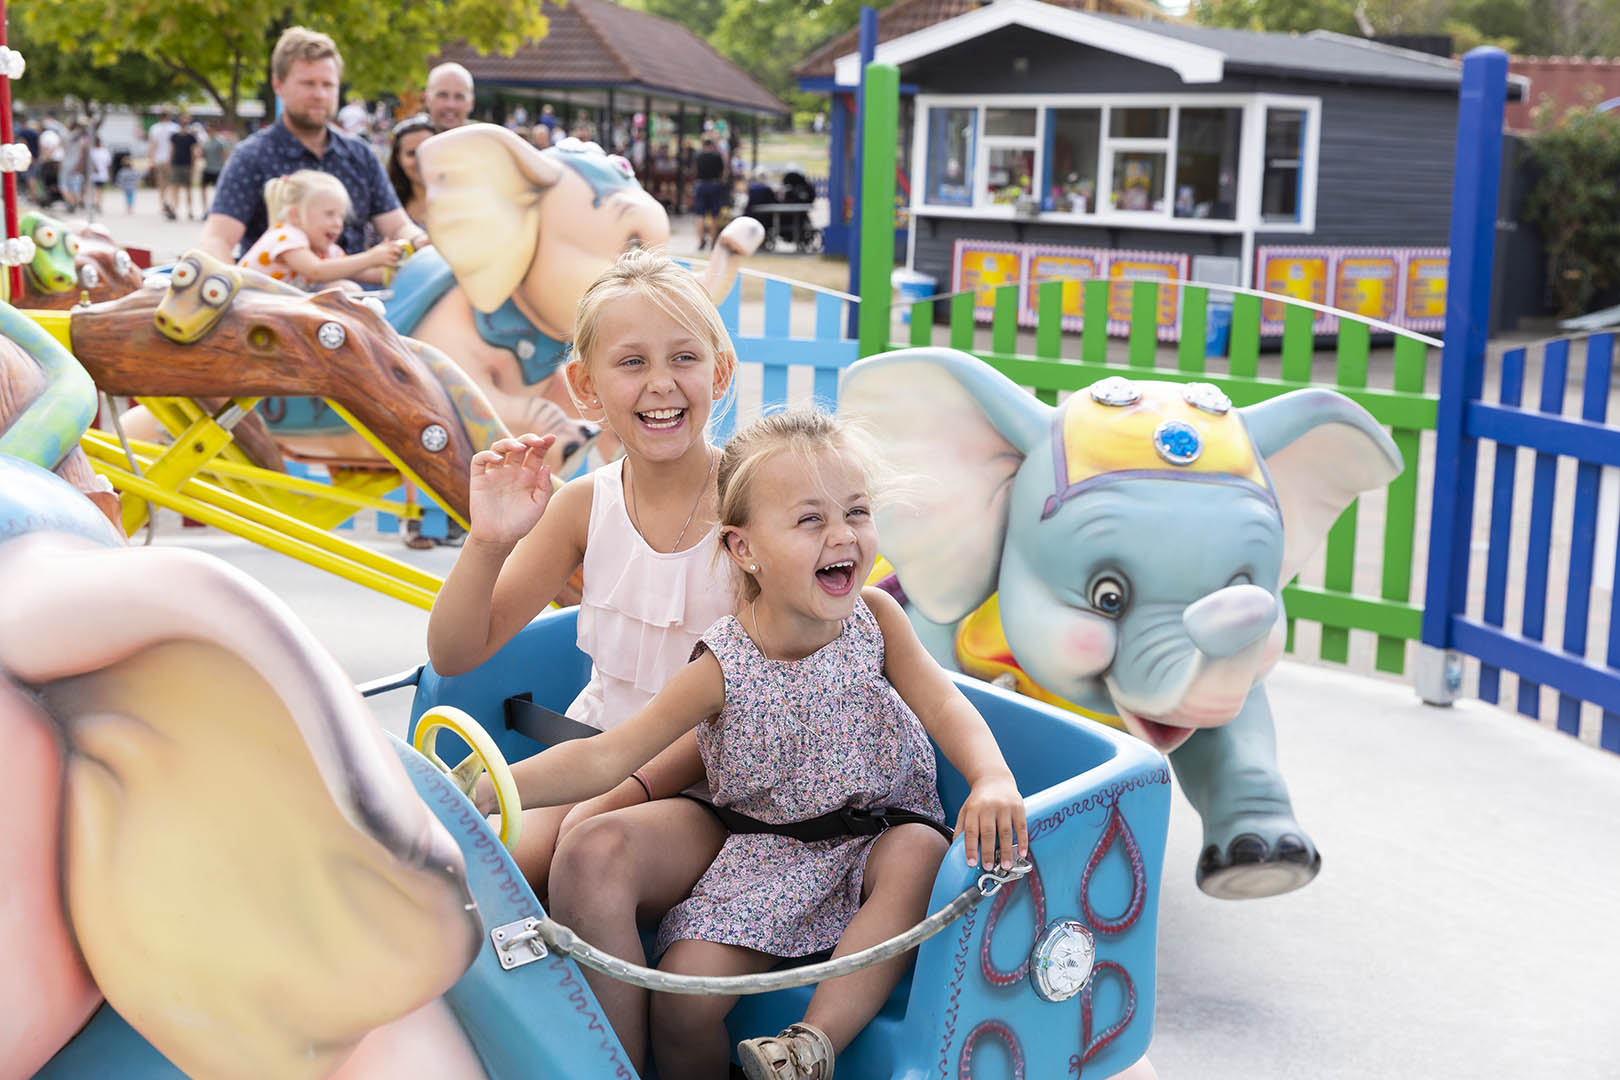 Sommerland Sjælland, Elephant rollercoaster, Summer fun for the family, Scan Magazine